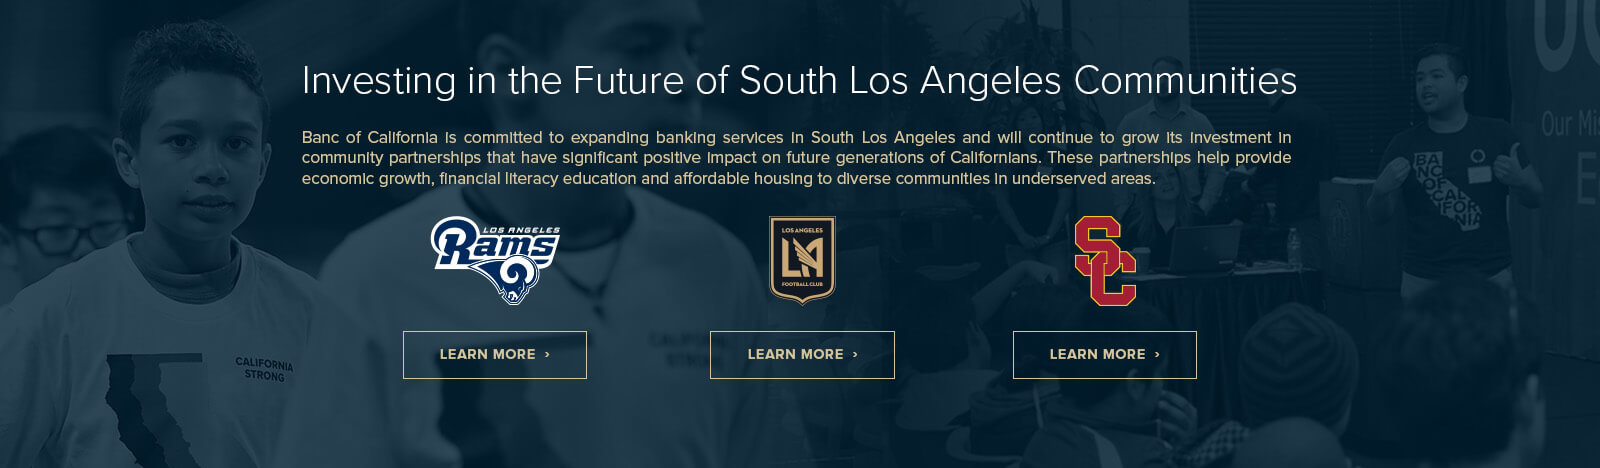 Investing in the Future of South Los Angeles Communities